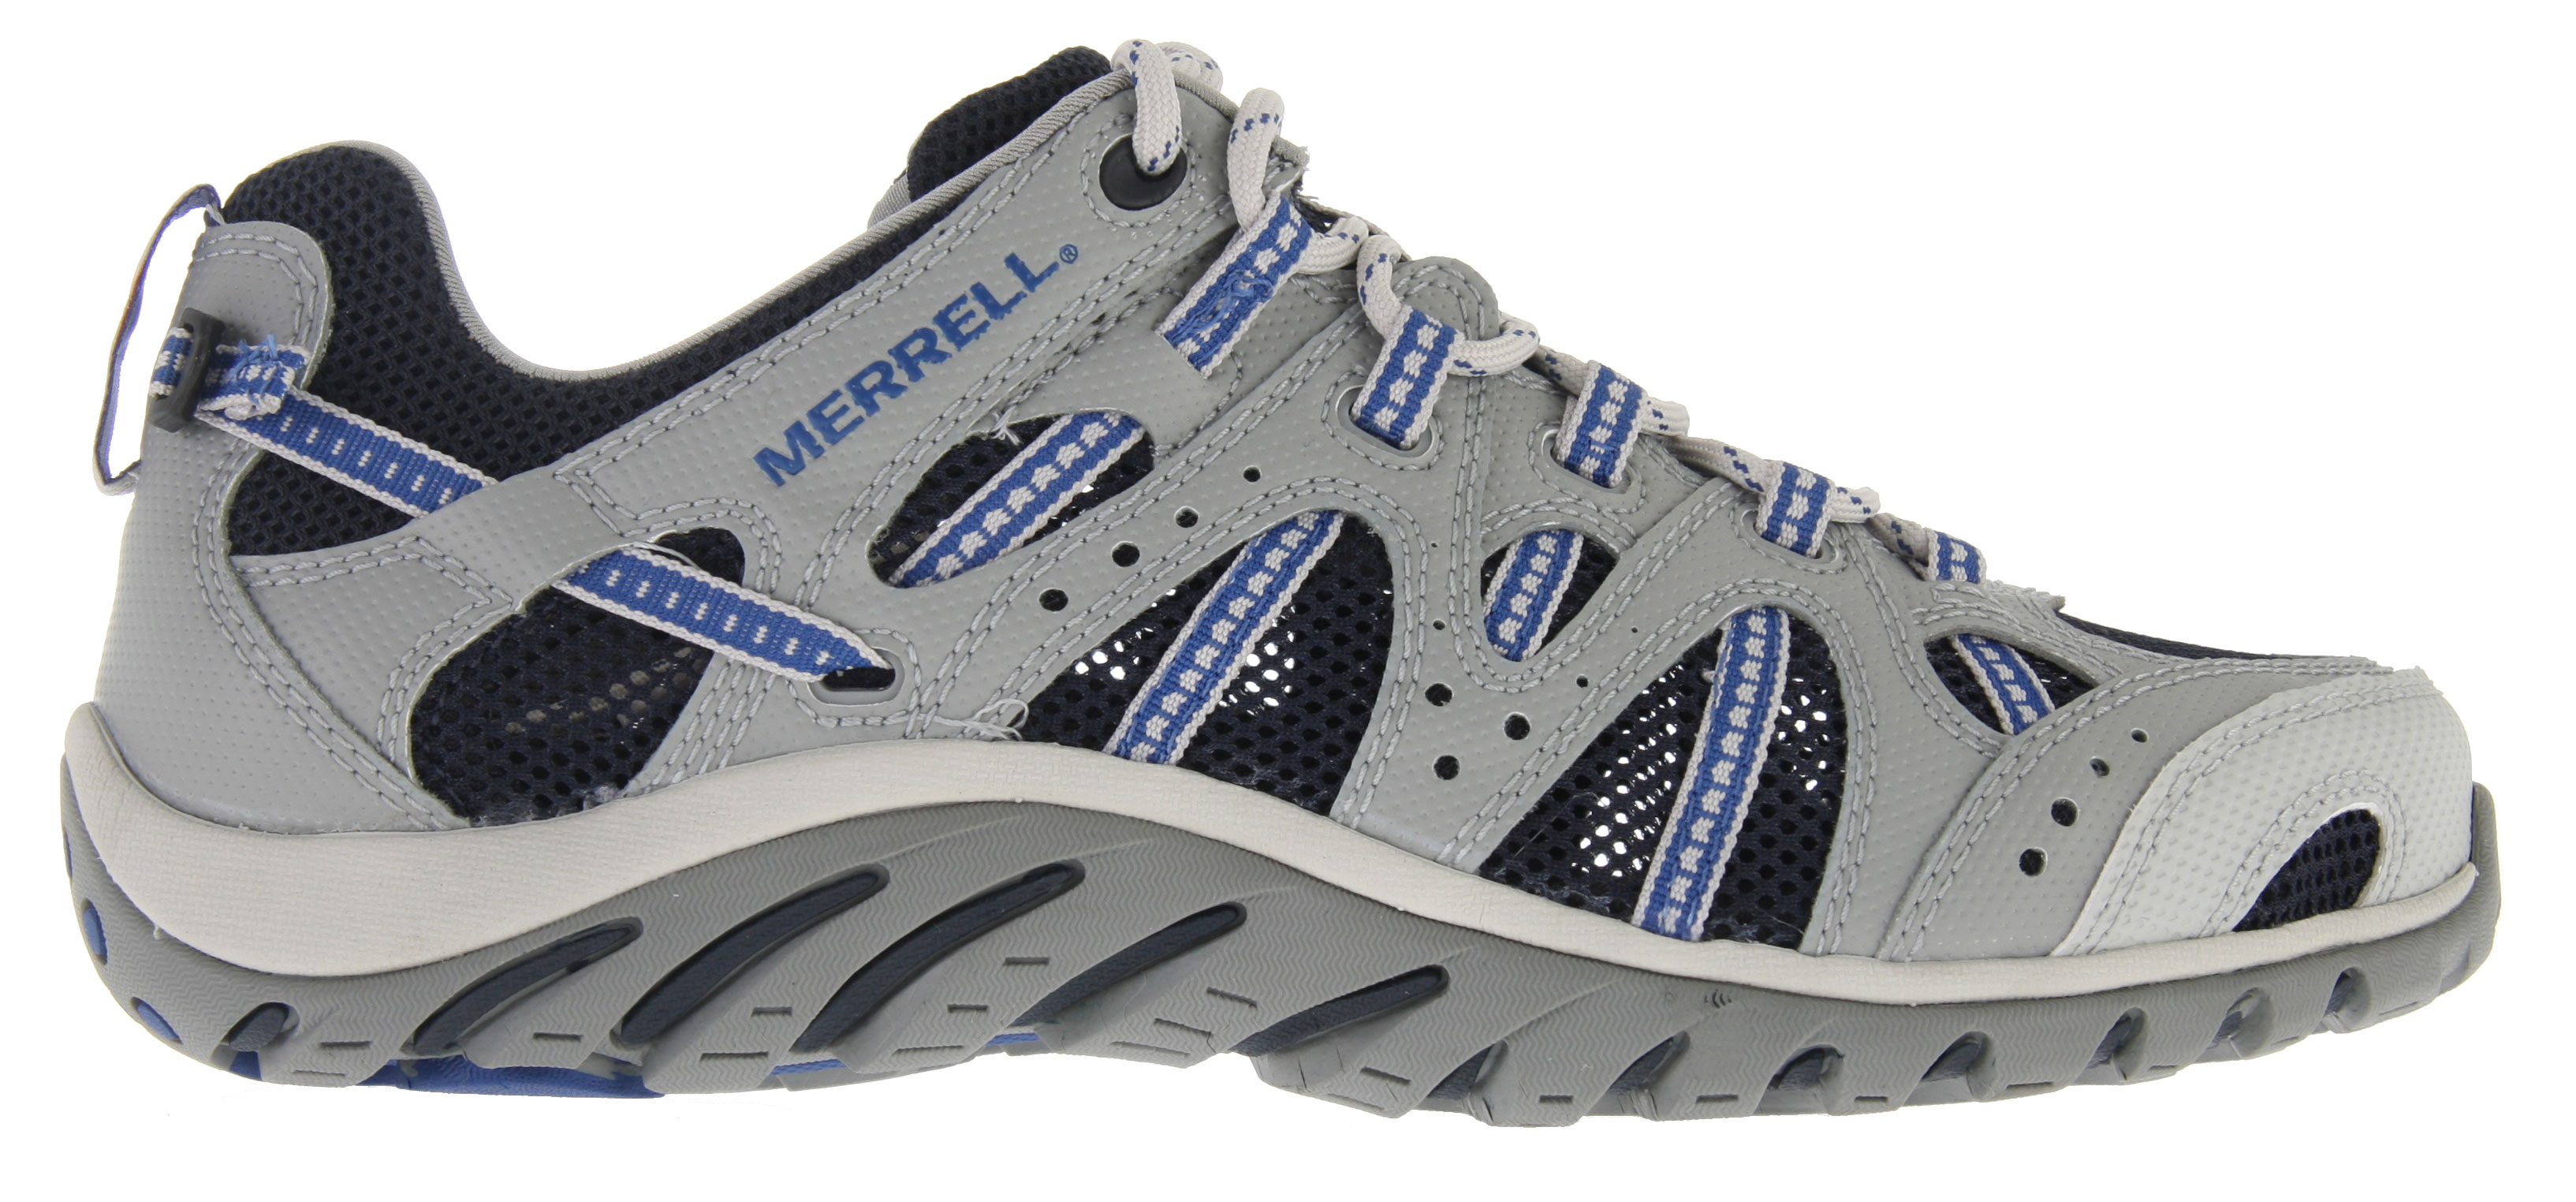 Skateboard Immerse yourself in your favorite element - the Merrell Waterpro Manistee Water Shoe holds on tight and goes with the flow. Merrell omni-Fit lacing secures a glove-like fit. Hydro-savvy perforated footbed, antimicrobial lining and drainage ports keep you comfortable soaking up the fun.Key Features of the Merrell Waterpro Manistee Water Shoes: Strobel construction offer flexibility and comfort 2mm EVA insole for comfort and shock absorption Synthetic leather and mesh upper Merrell omni-Fit (TM) lacing system provides a precise, glove-like fit Synthetic leather toe bumper protection Perforated EVA footbed treated with Aegis (R) antimicrobial solution Molded nylon arch shank Compression molded EVA footframe provides cushioning Merrell air cushion in the heel absorbs shock and adds stability Lug Depth: 3mm Water friendly non marking sipped sole Merrell Waterpro Light Sole/ tC5+ rubber Vegan friendly footwear - $89.95